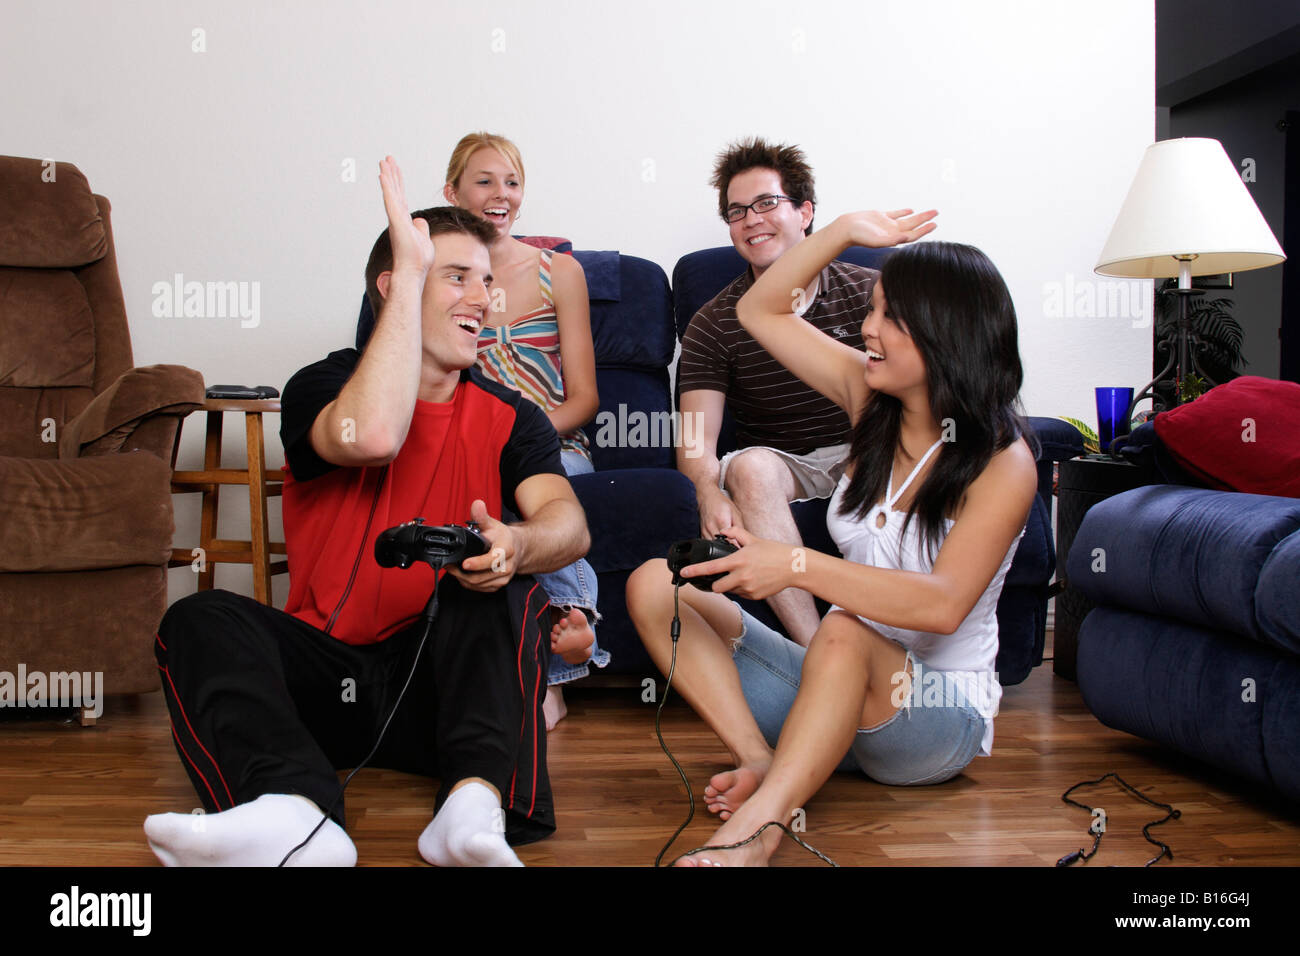 video teens Stock Photograph of four teens having fun playing video games - Stock Photo